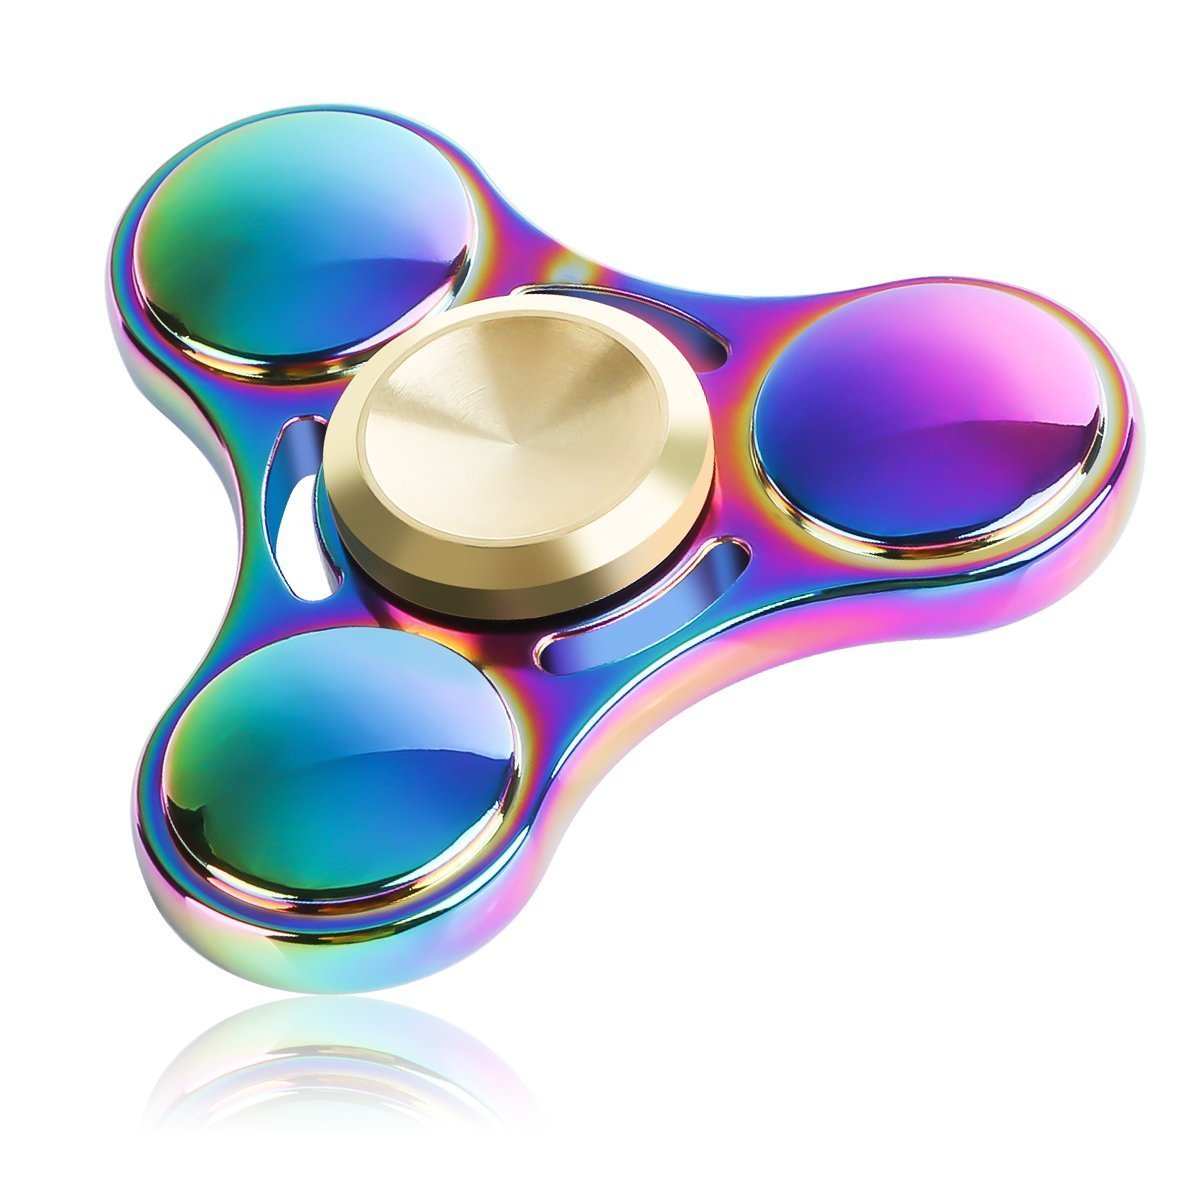 Fidget Tri-Spinner Toy Relieves Stress Anxitey boredom Best for ADD ADHD